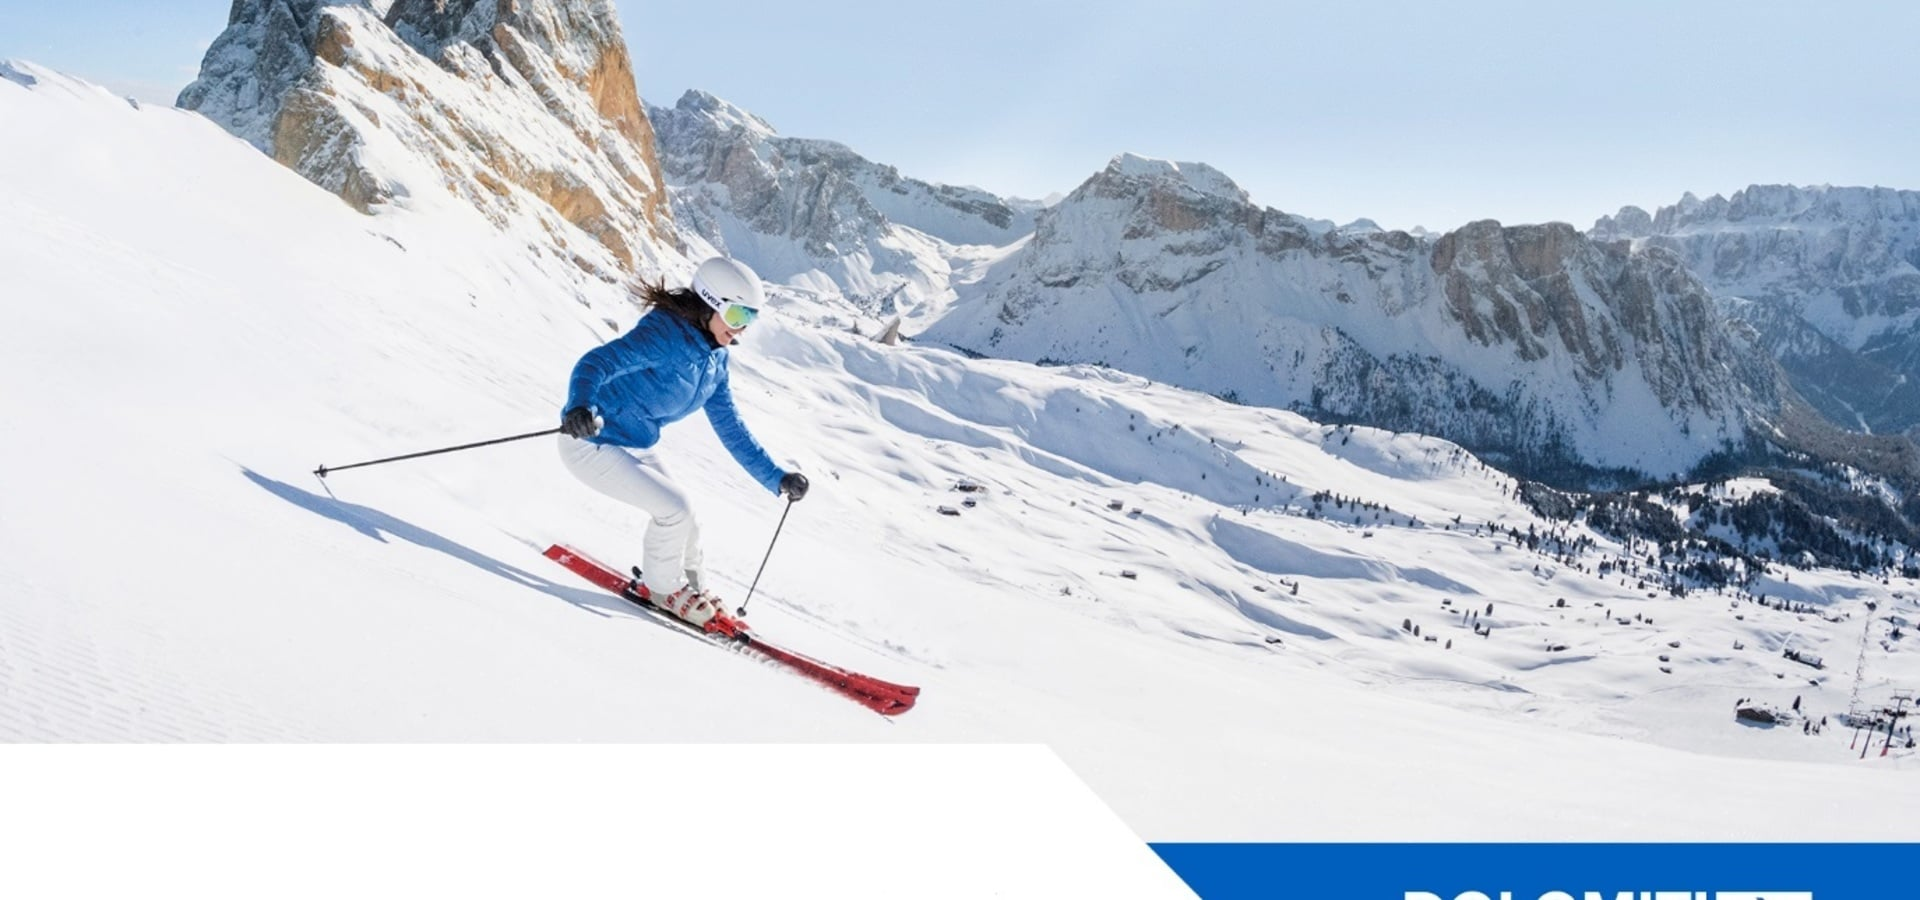 DOLOMITI SUPERSKI: to ensure skiing enthusiasts enjoy in maximum safety and peace of mind